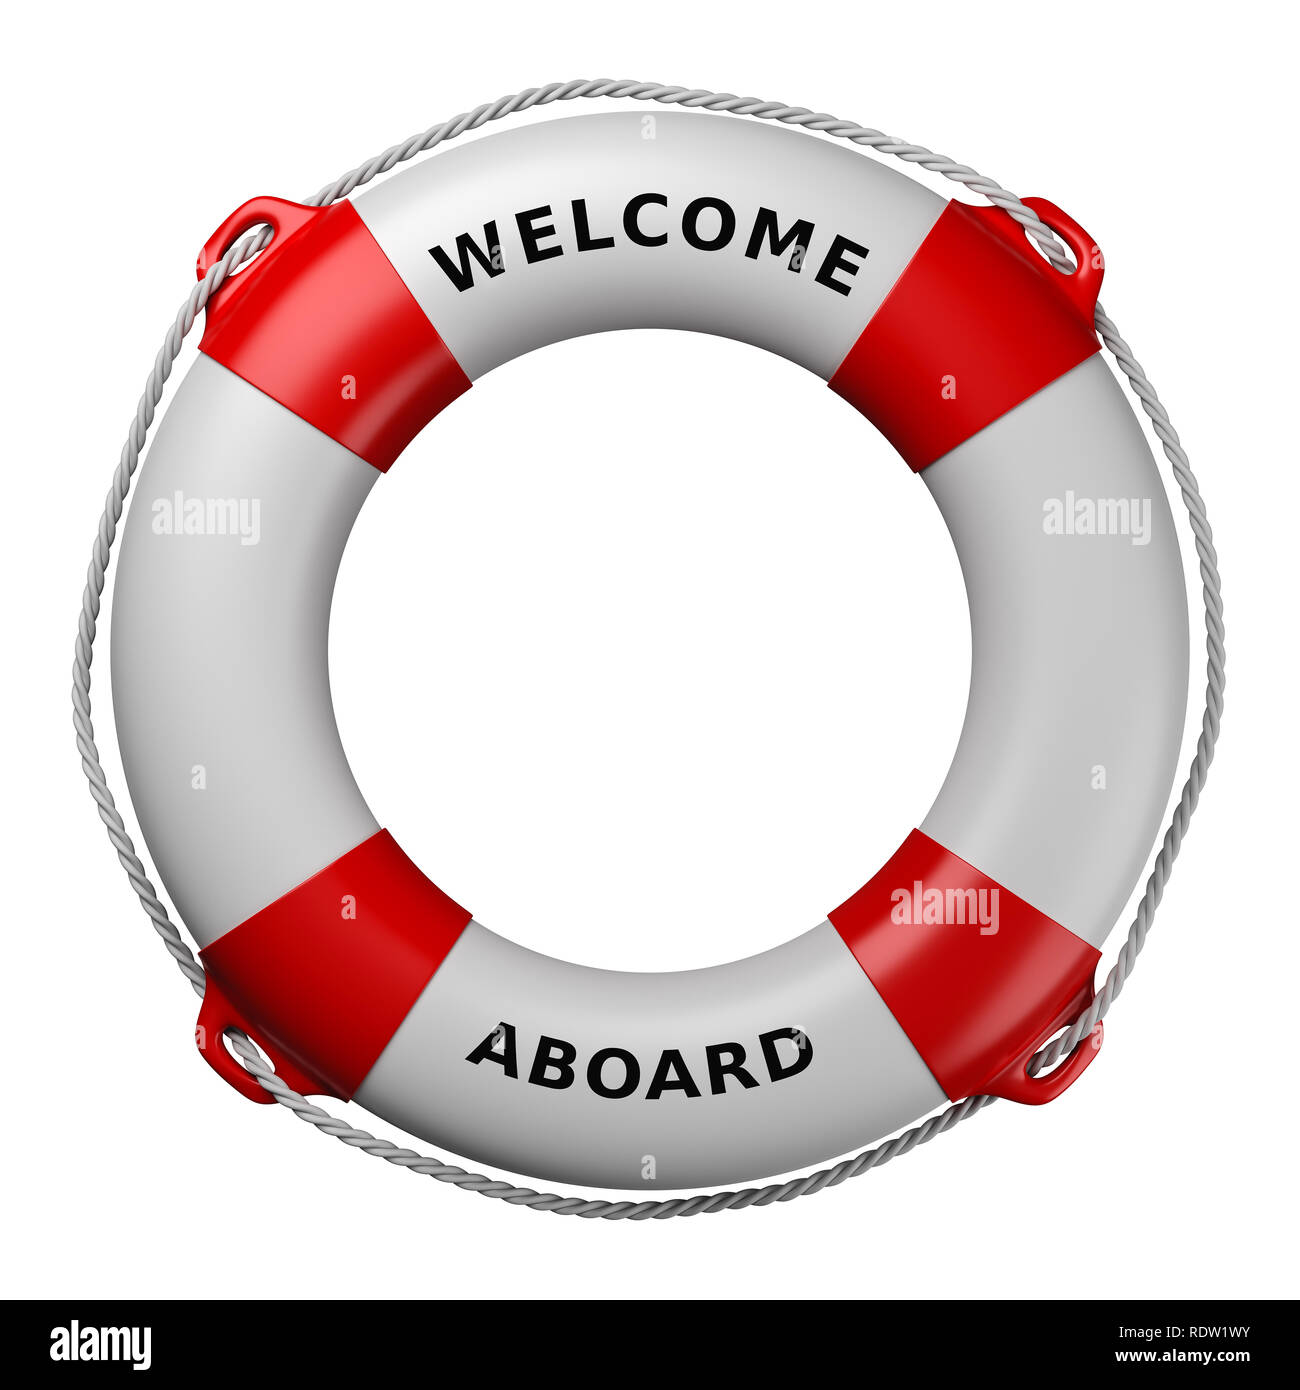 dd33d6c4ef81 Lifebuoy with Welcome Aboard Text Isolated on White Background 3D  Illustration - Stock Image